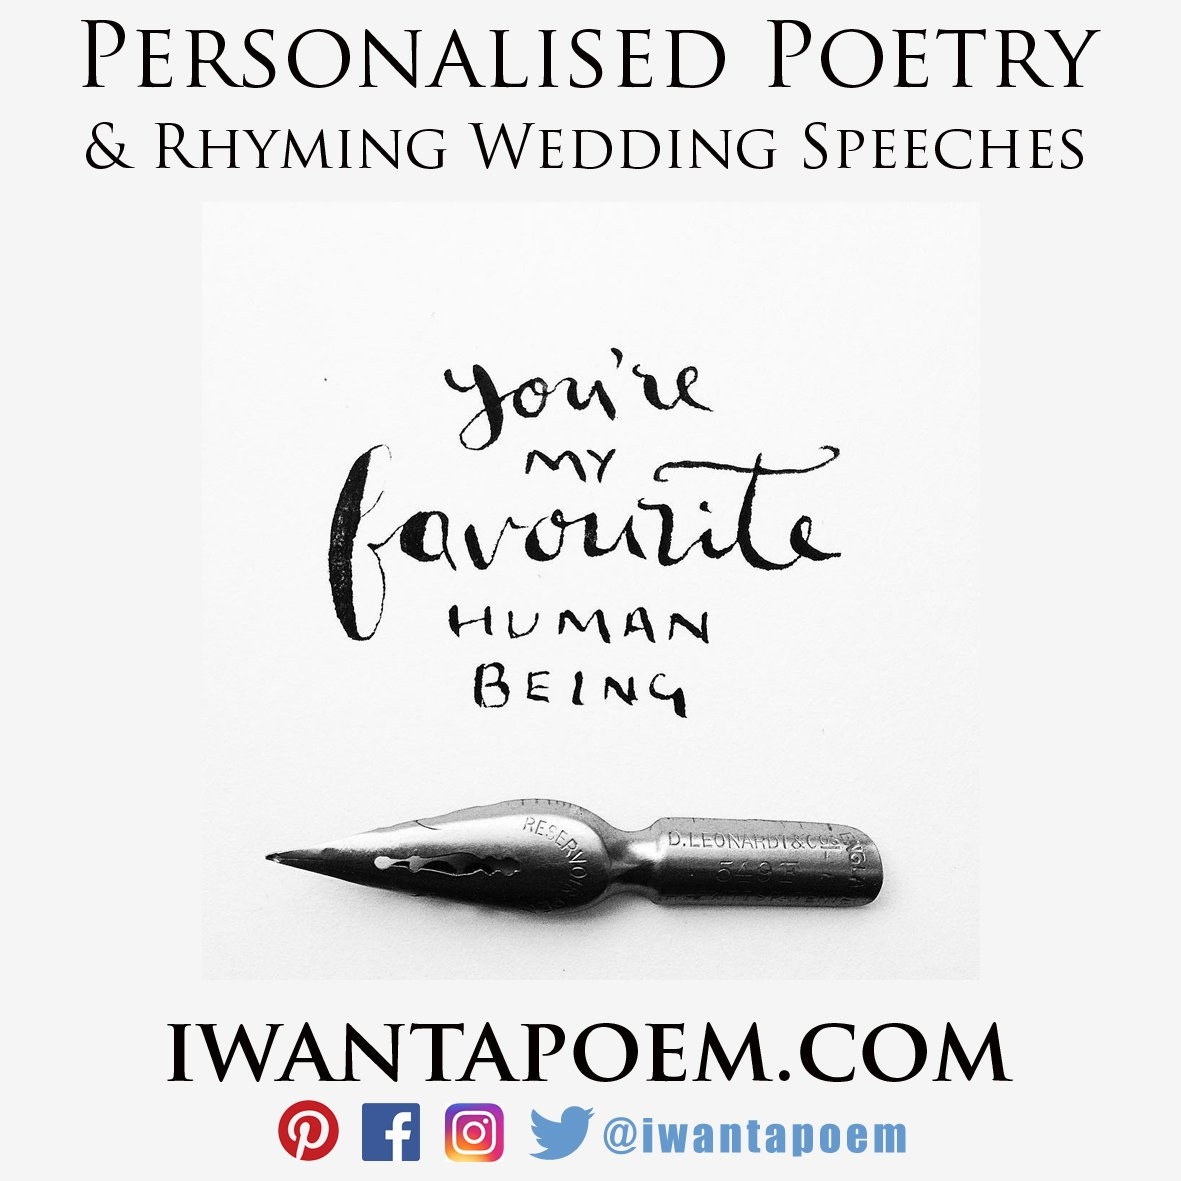 custom poems and personalized rhymes http://www.iwantapoem.com